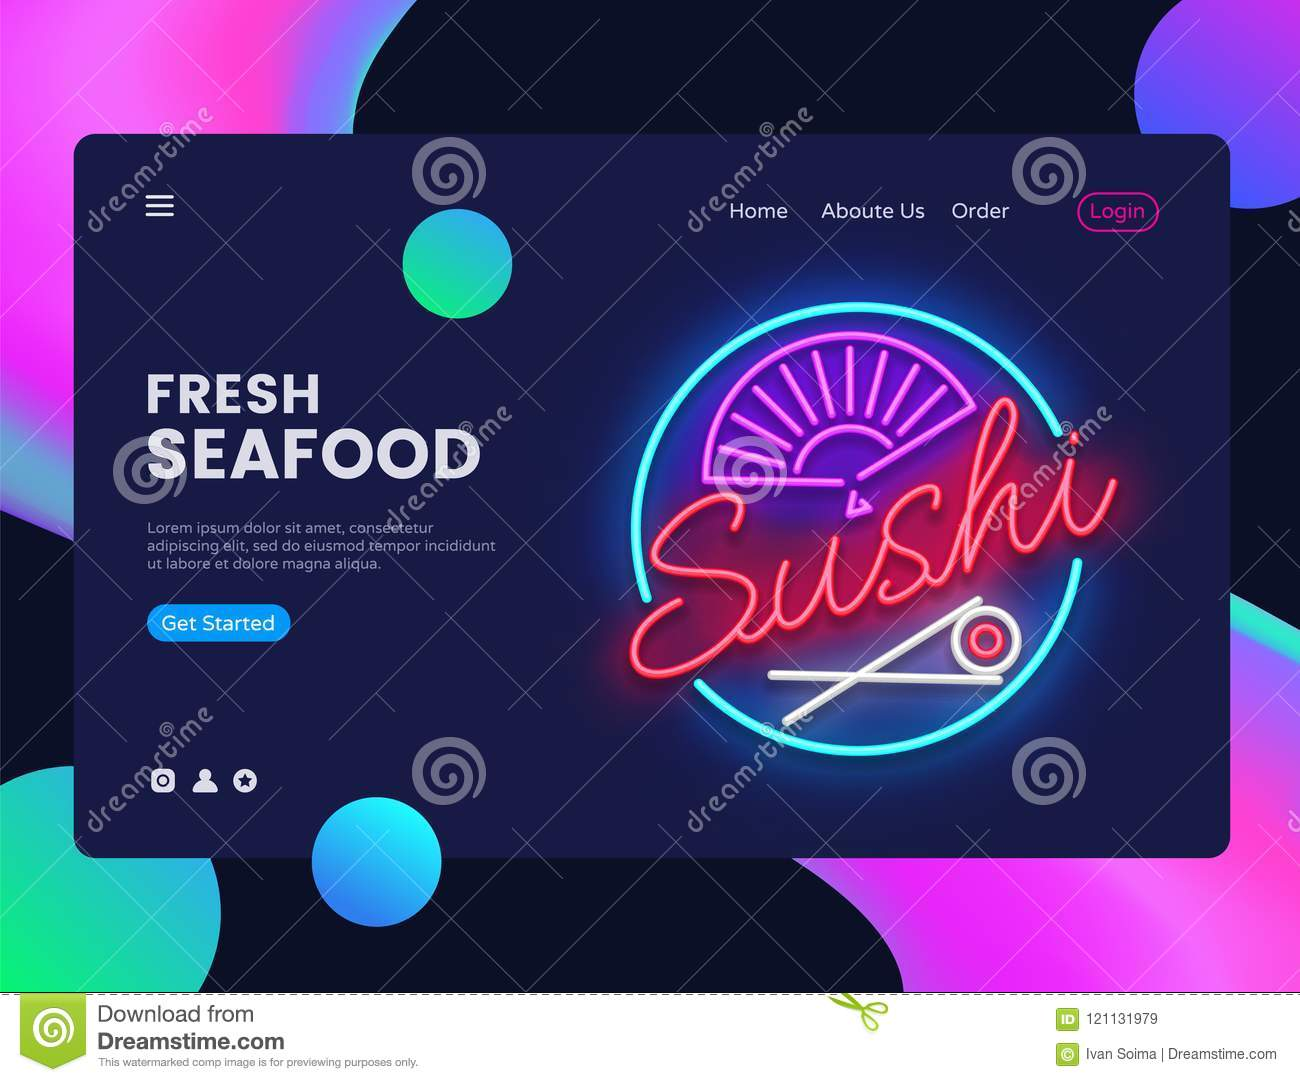 Sushi banner design template vector. Seafood web banner interface, Neon sign, modern trend design, neon style web banner